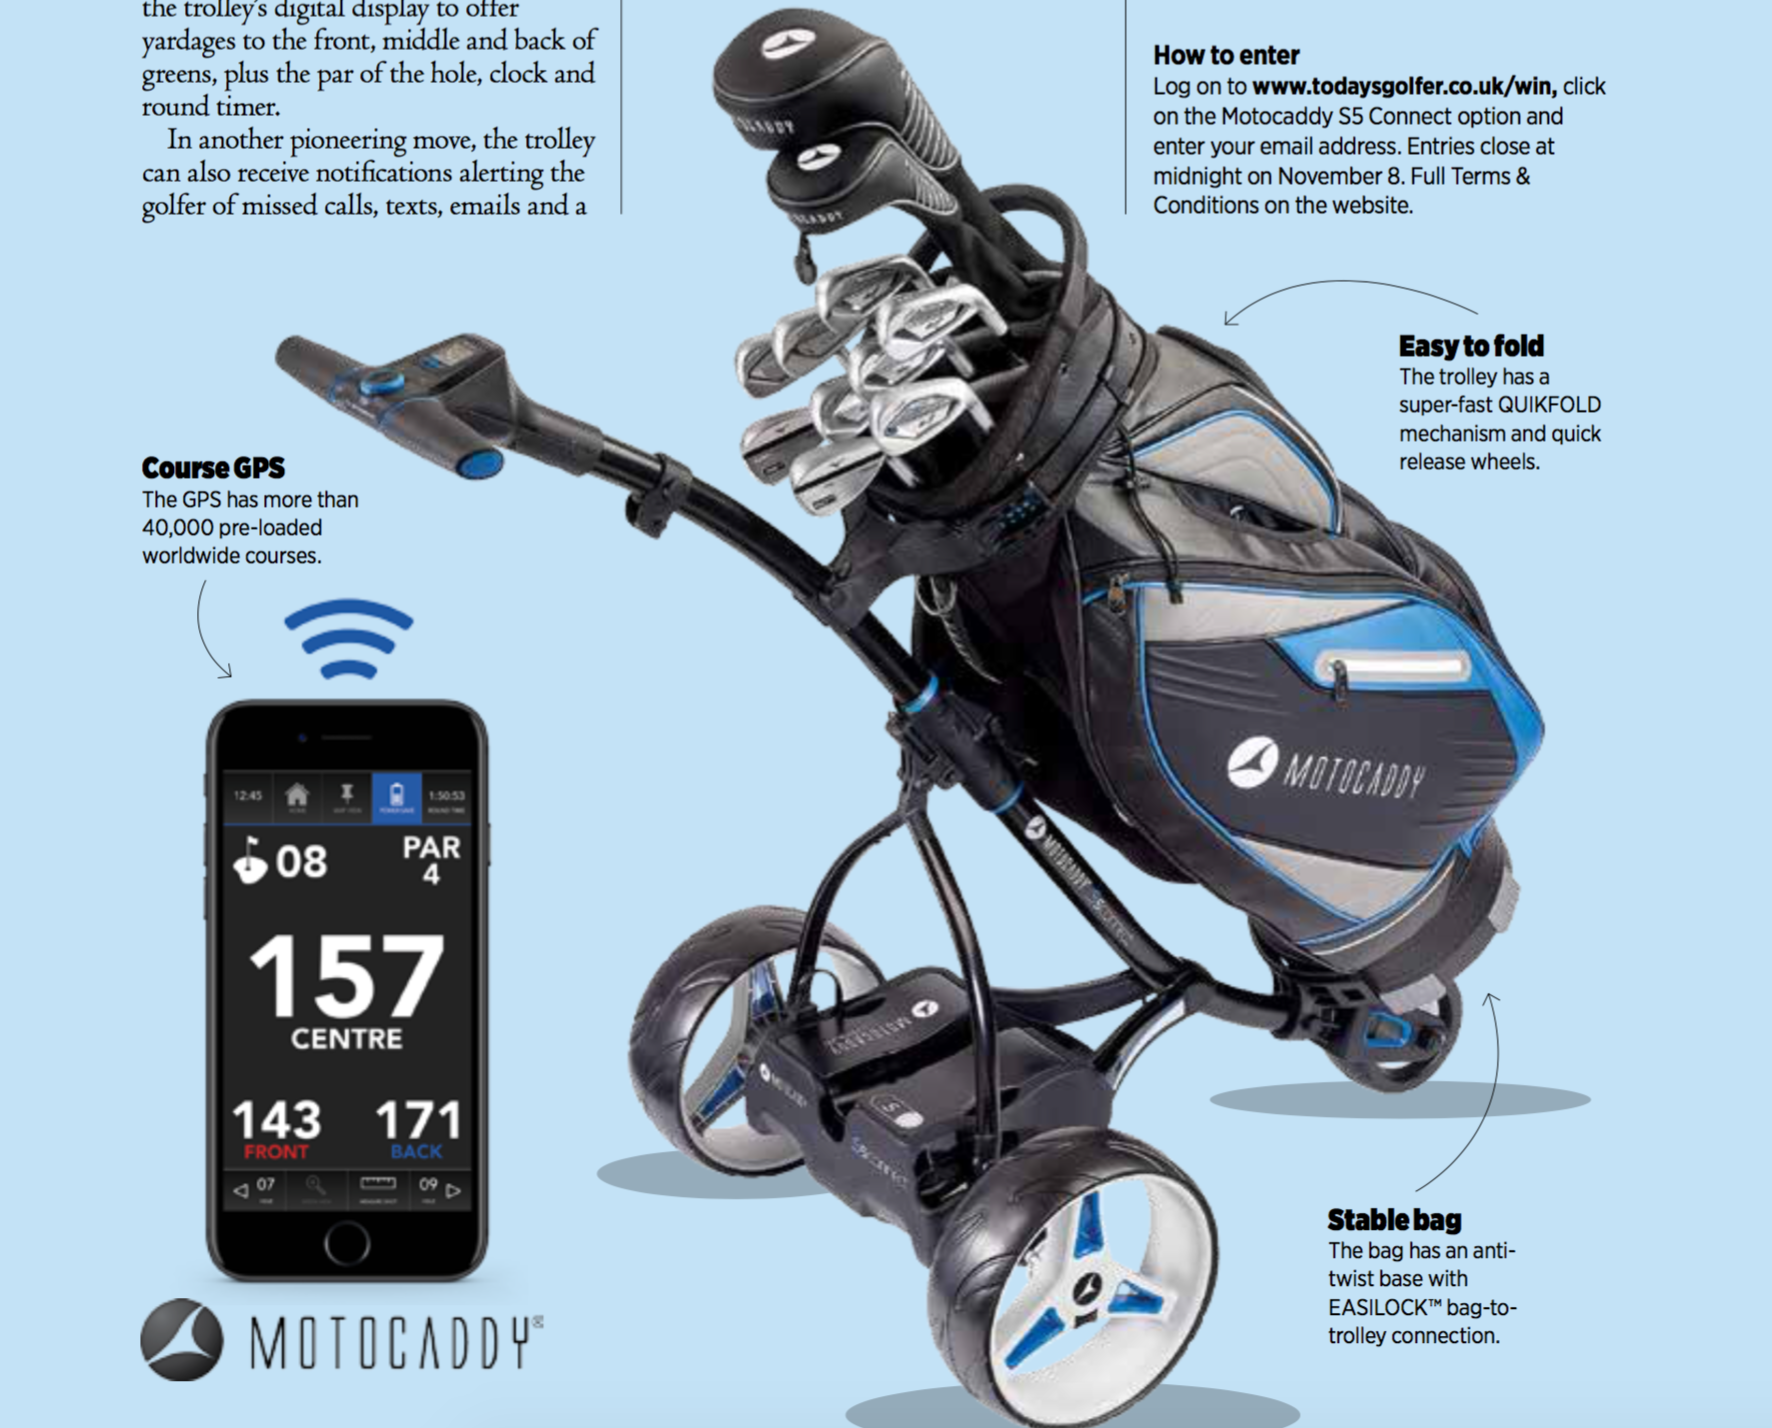 WIN A MOTOCADDY S5 CONNECT TROLLEY sweepstakes